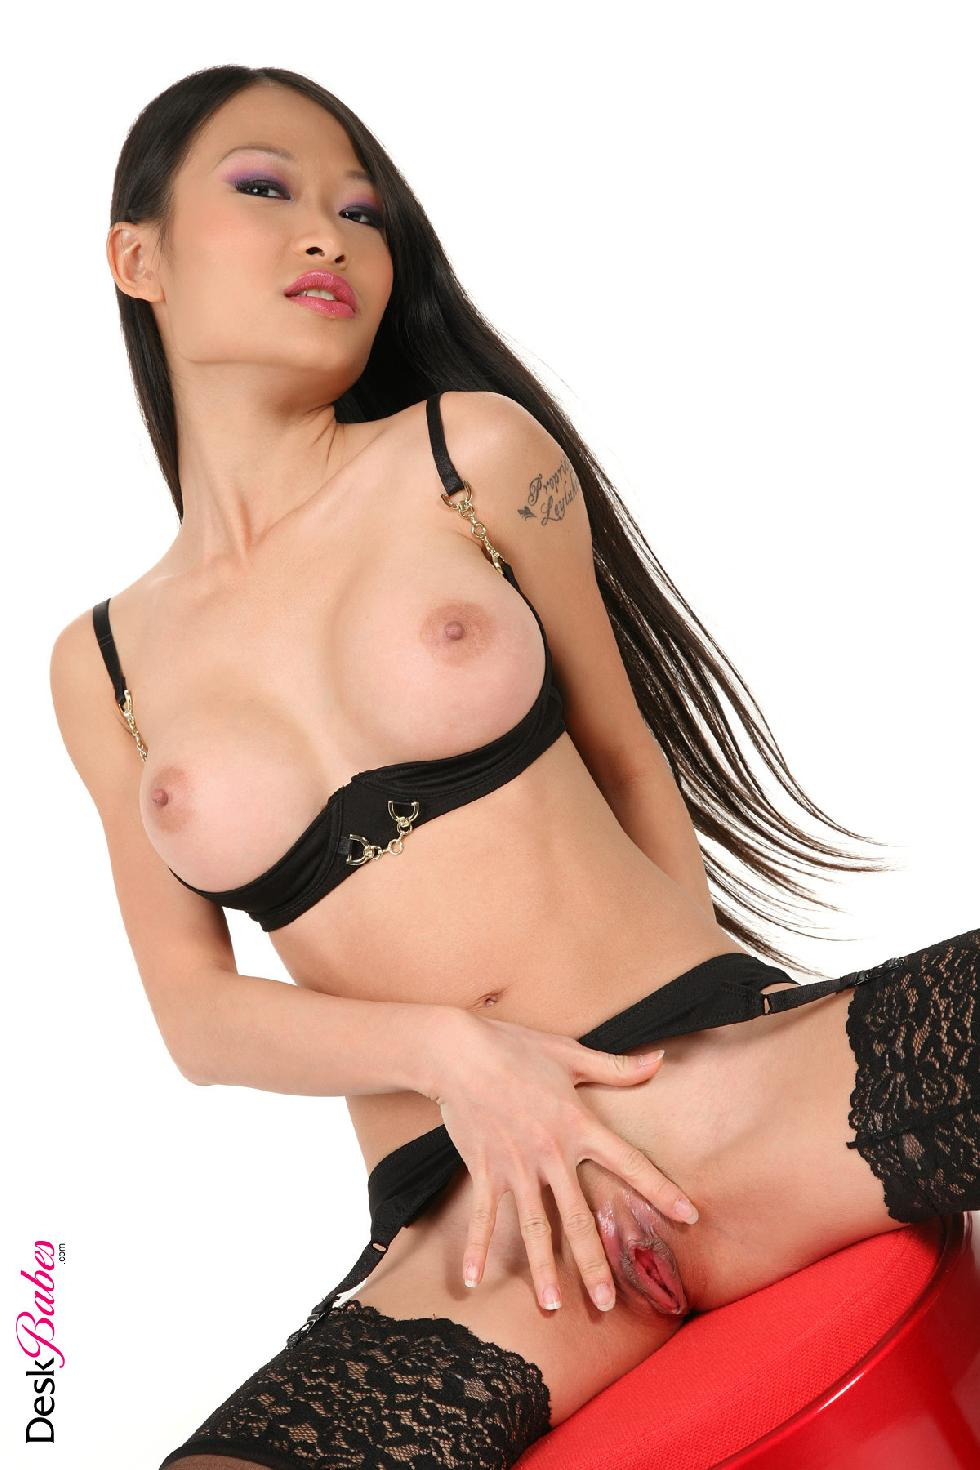 Sexy long-haired Asian chick - PussyKat - 10